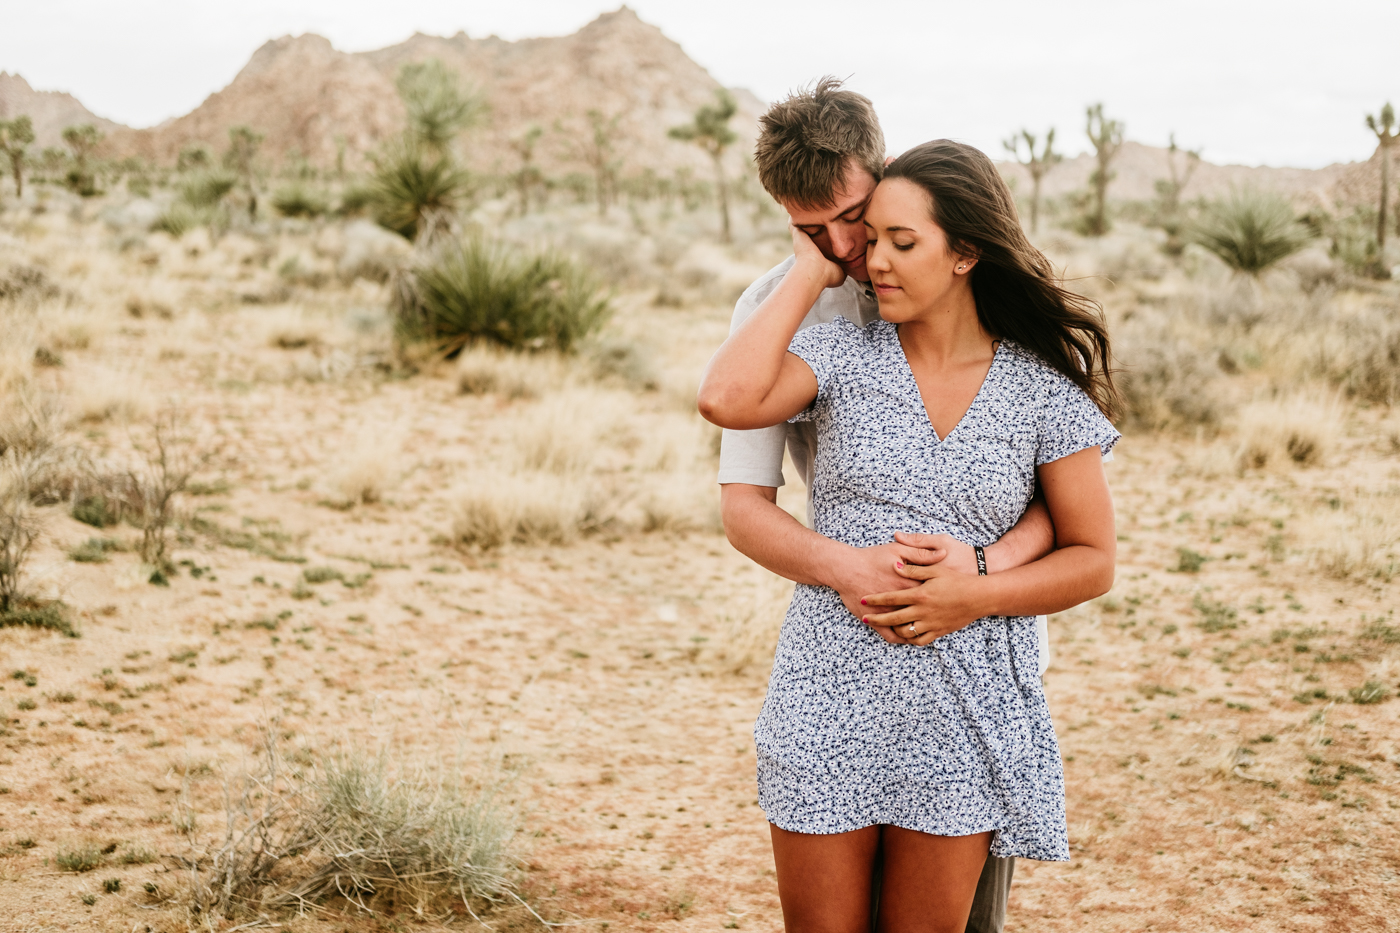 Baliey+Thomas.Engagement.JoshuaTree©mileswittboyer.com2018-9.jpg